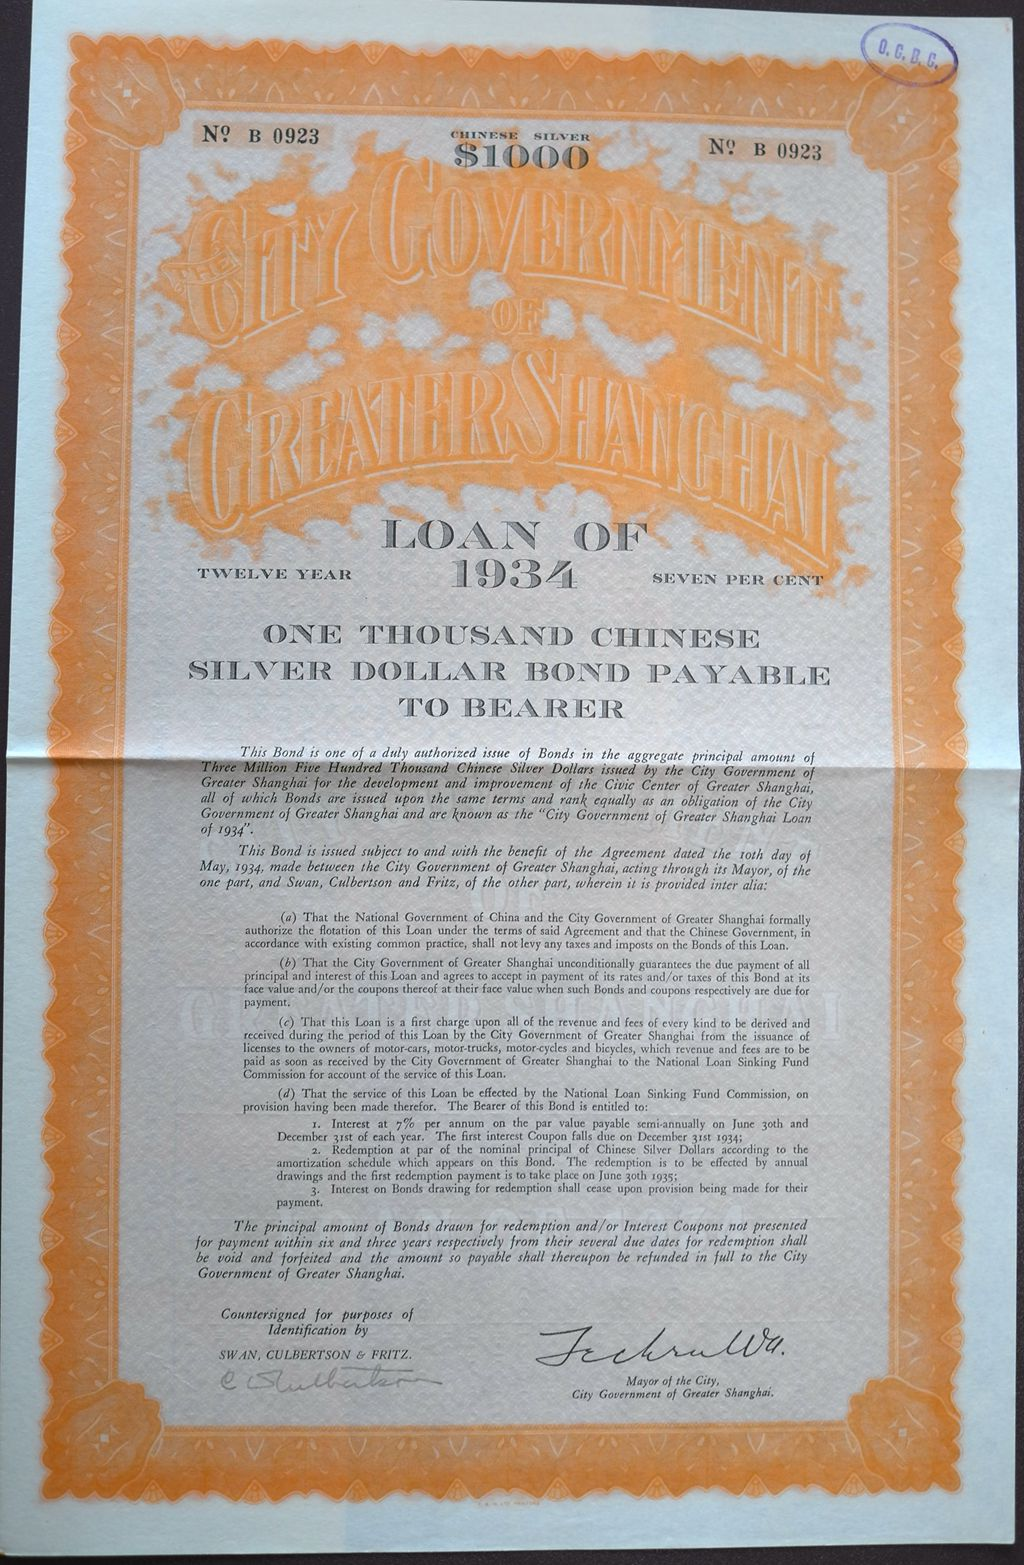 B2772, Greater Shanghai Government Loan, 1000 Dollars Bond, 1934